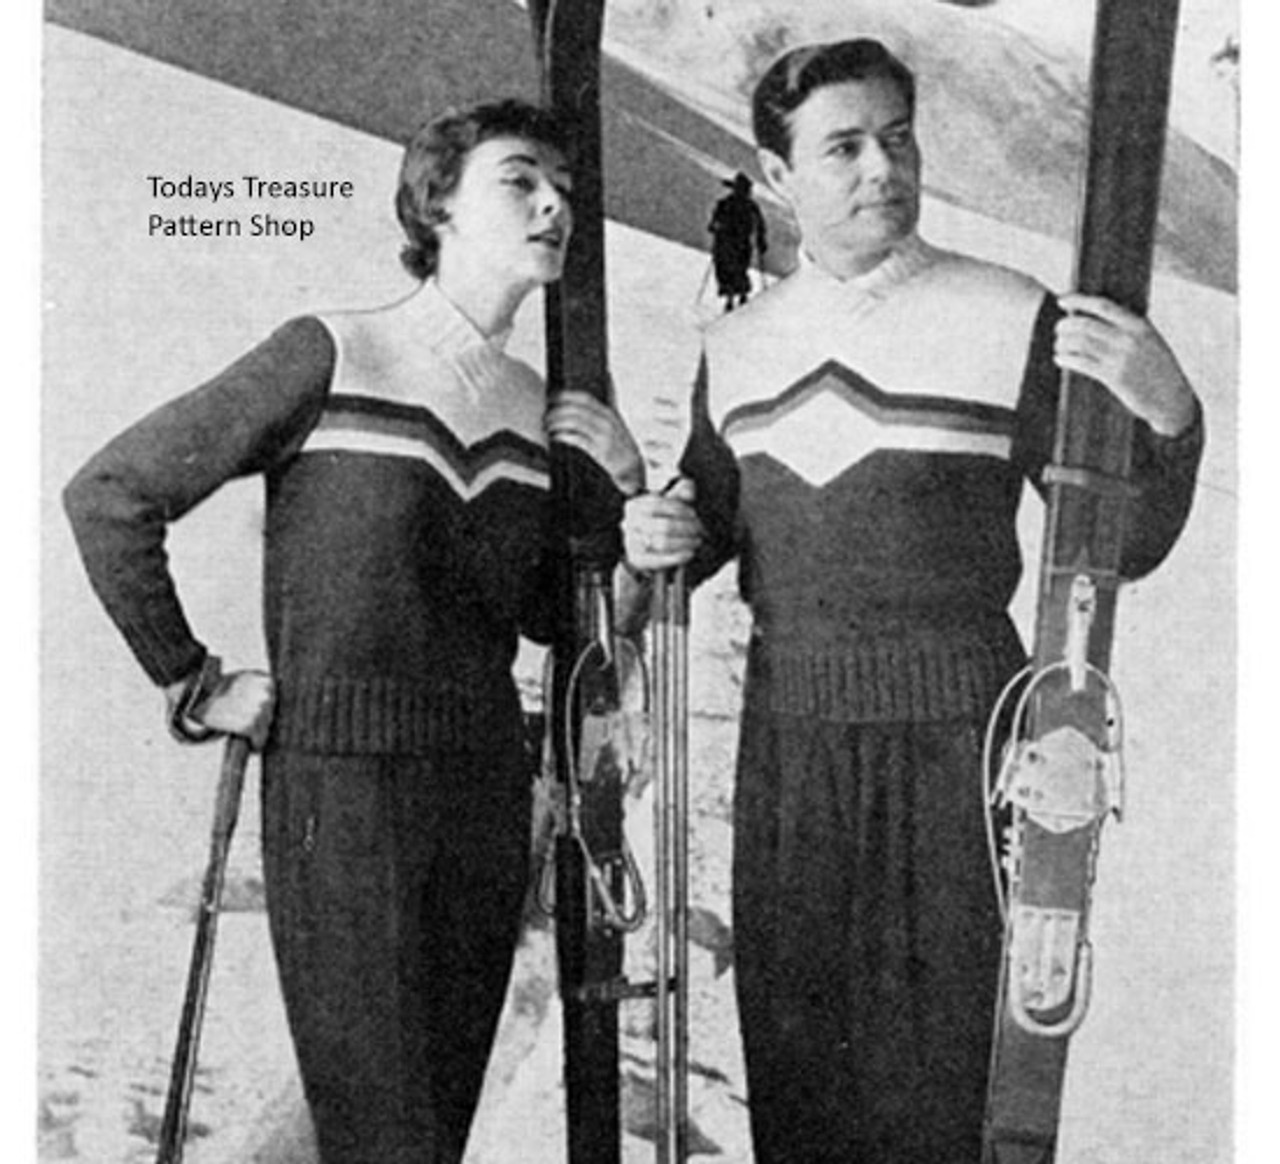 His Hers Knitted Ski Sweater Vintage Pattern